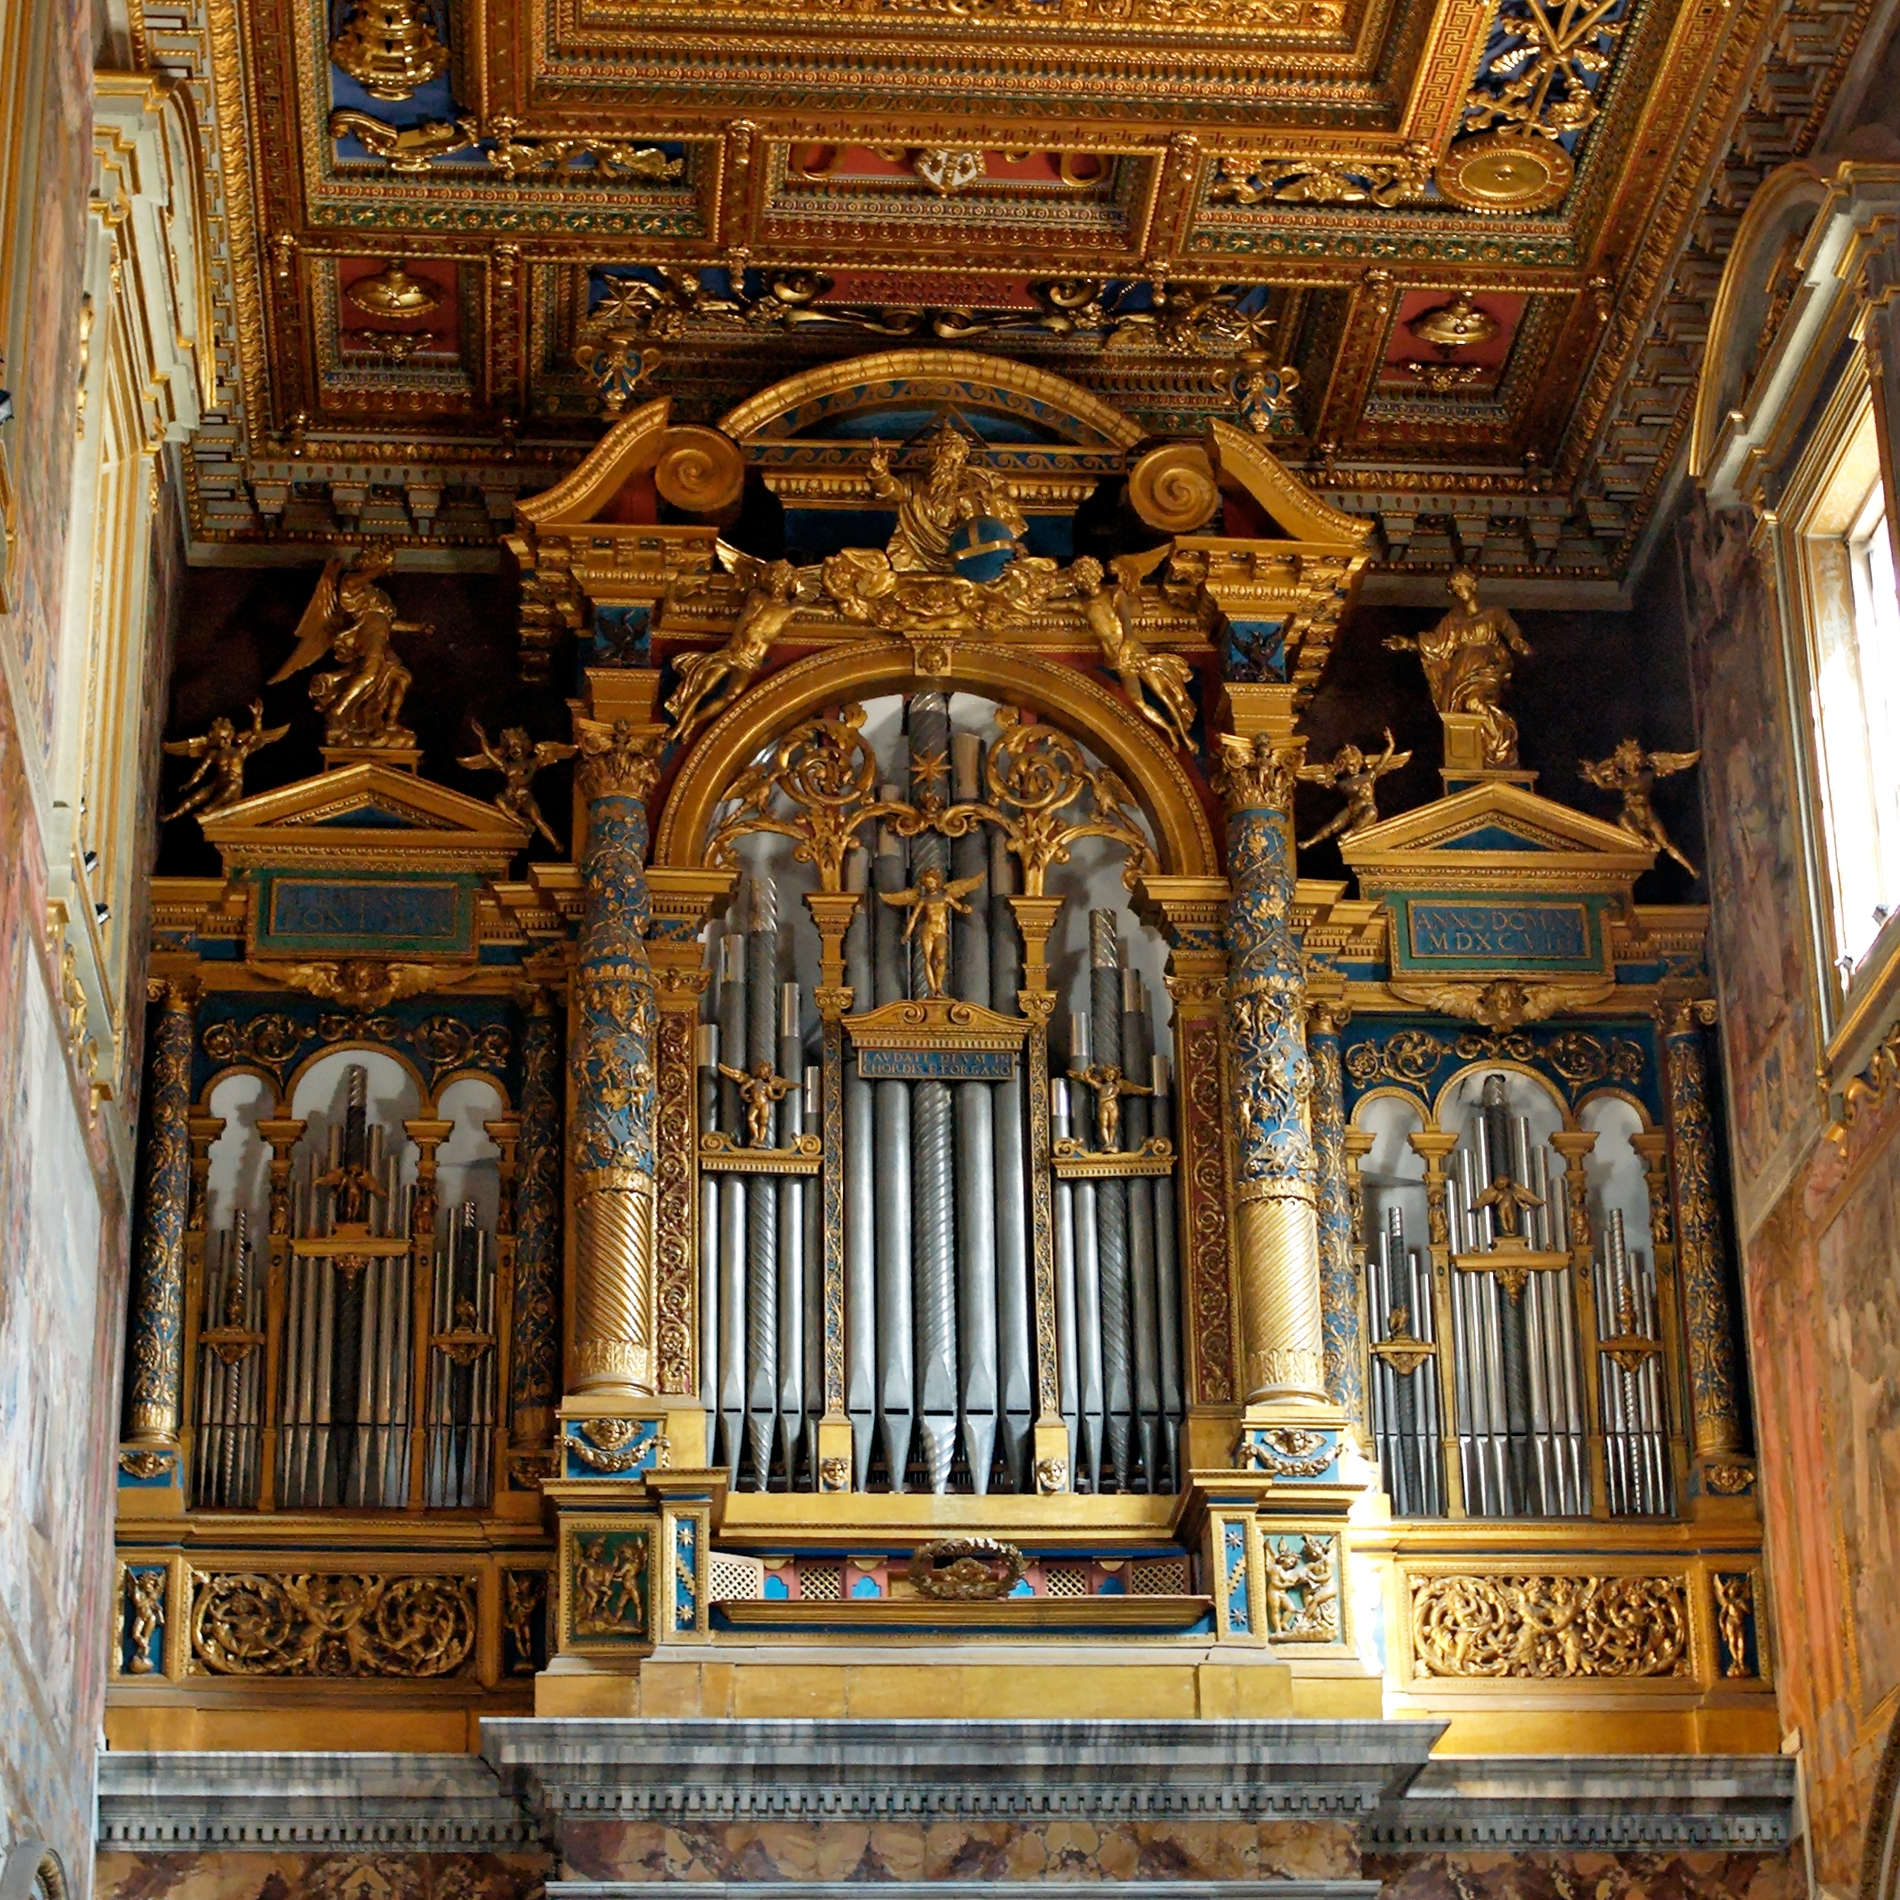 Pipe_organ_San_Giovanni_in_Laterano_2006-09-07.jpg